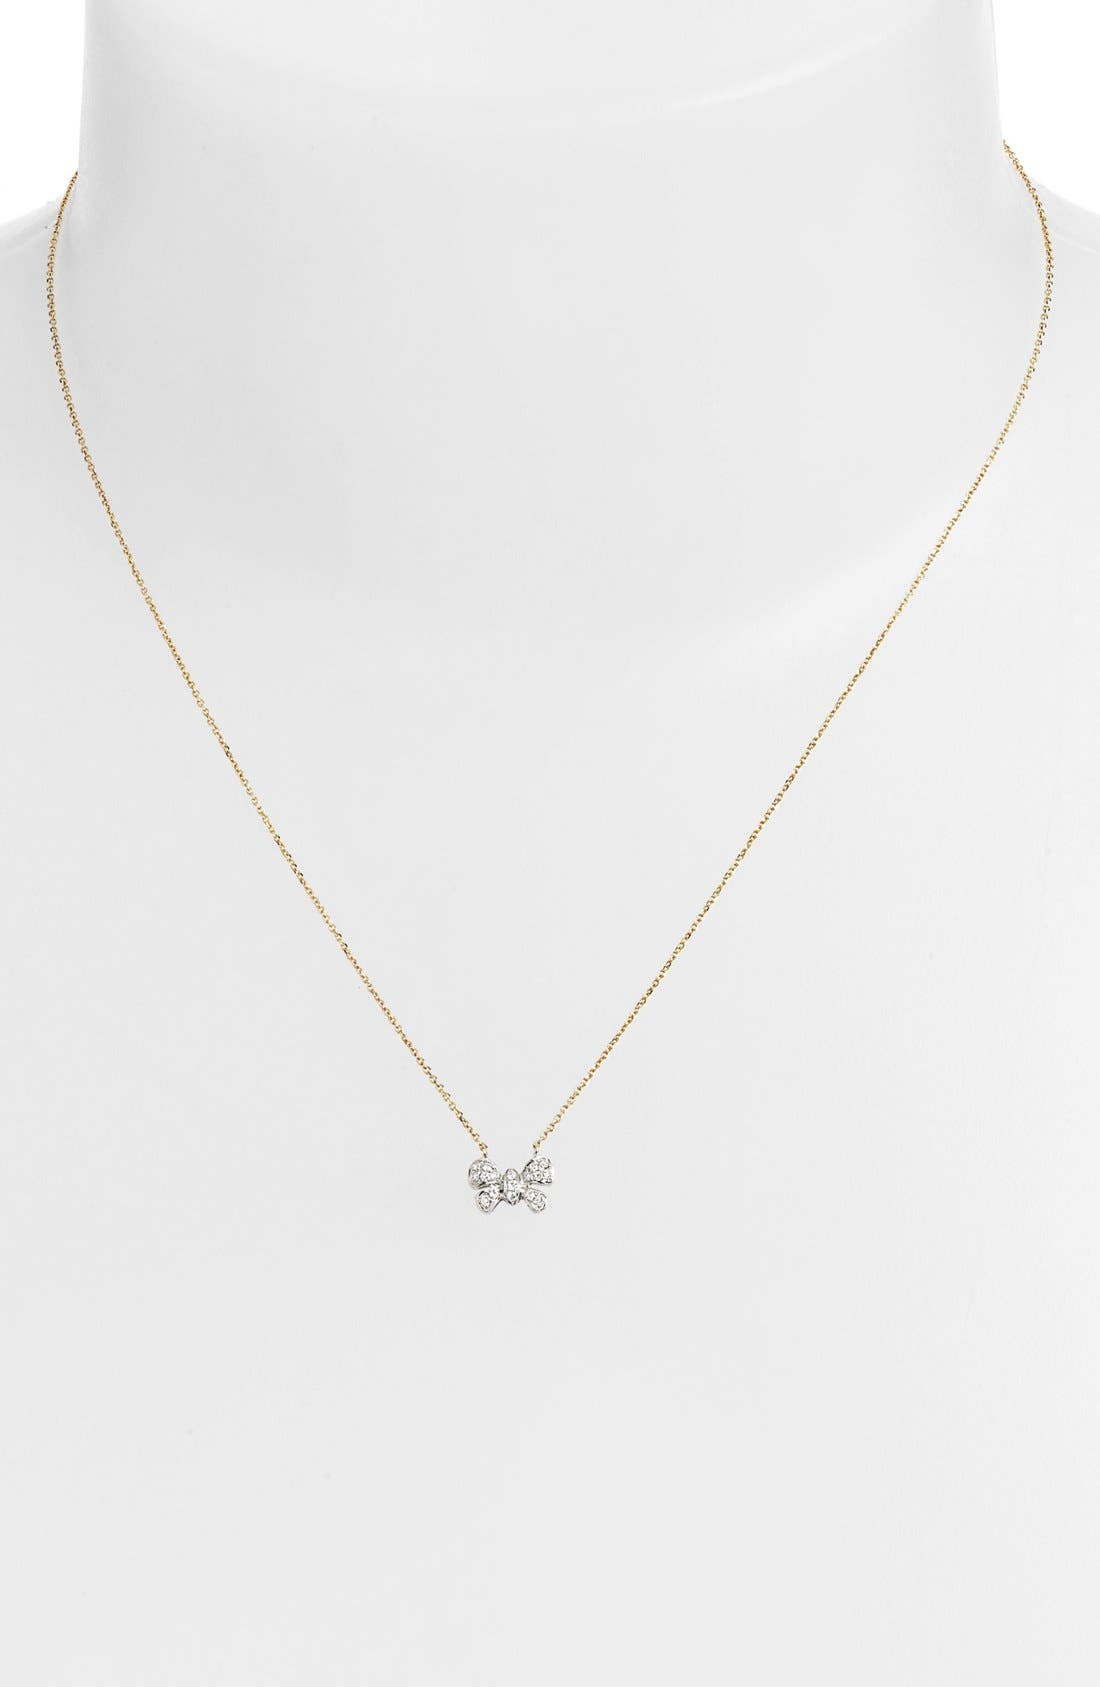 Alternate Image 1 Selected - Dana Rebecca Designs 'Margo Ashley' Diamond Bow Pendant Necklace